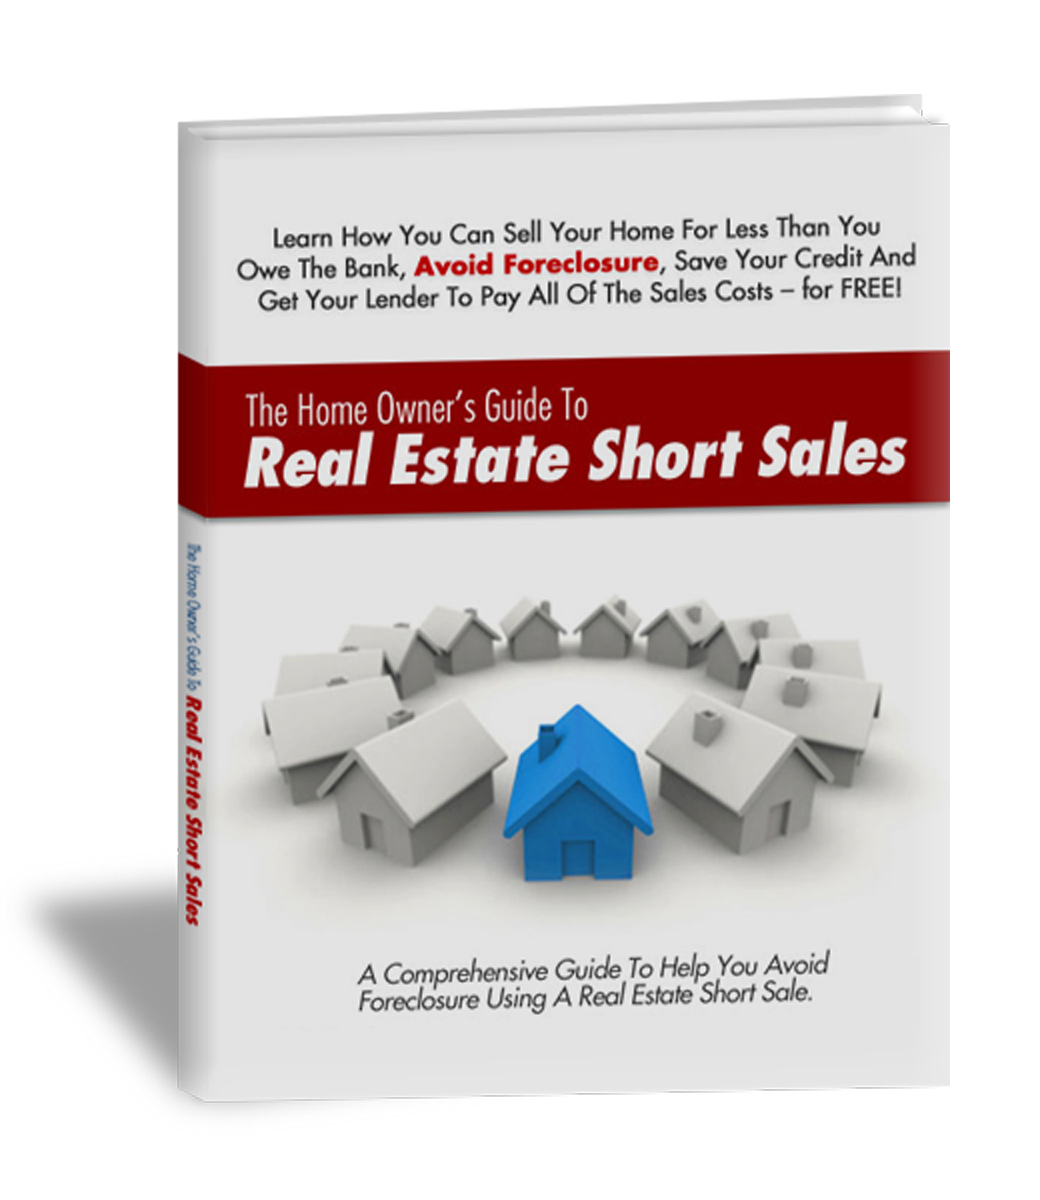 Easiet way to describe short sale?